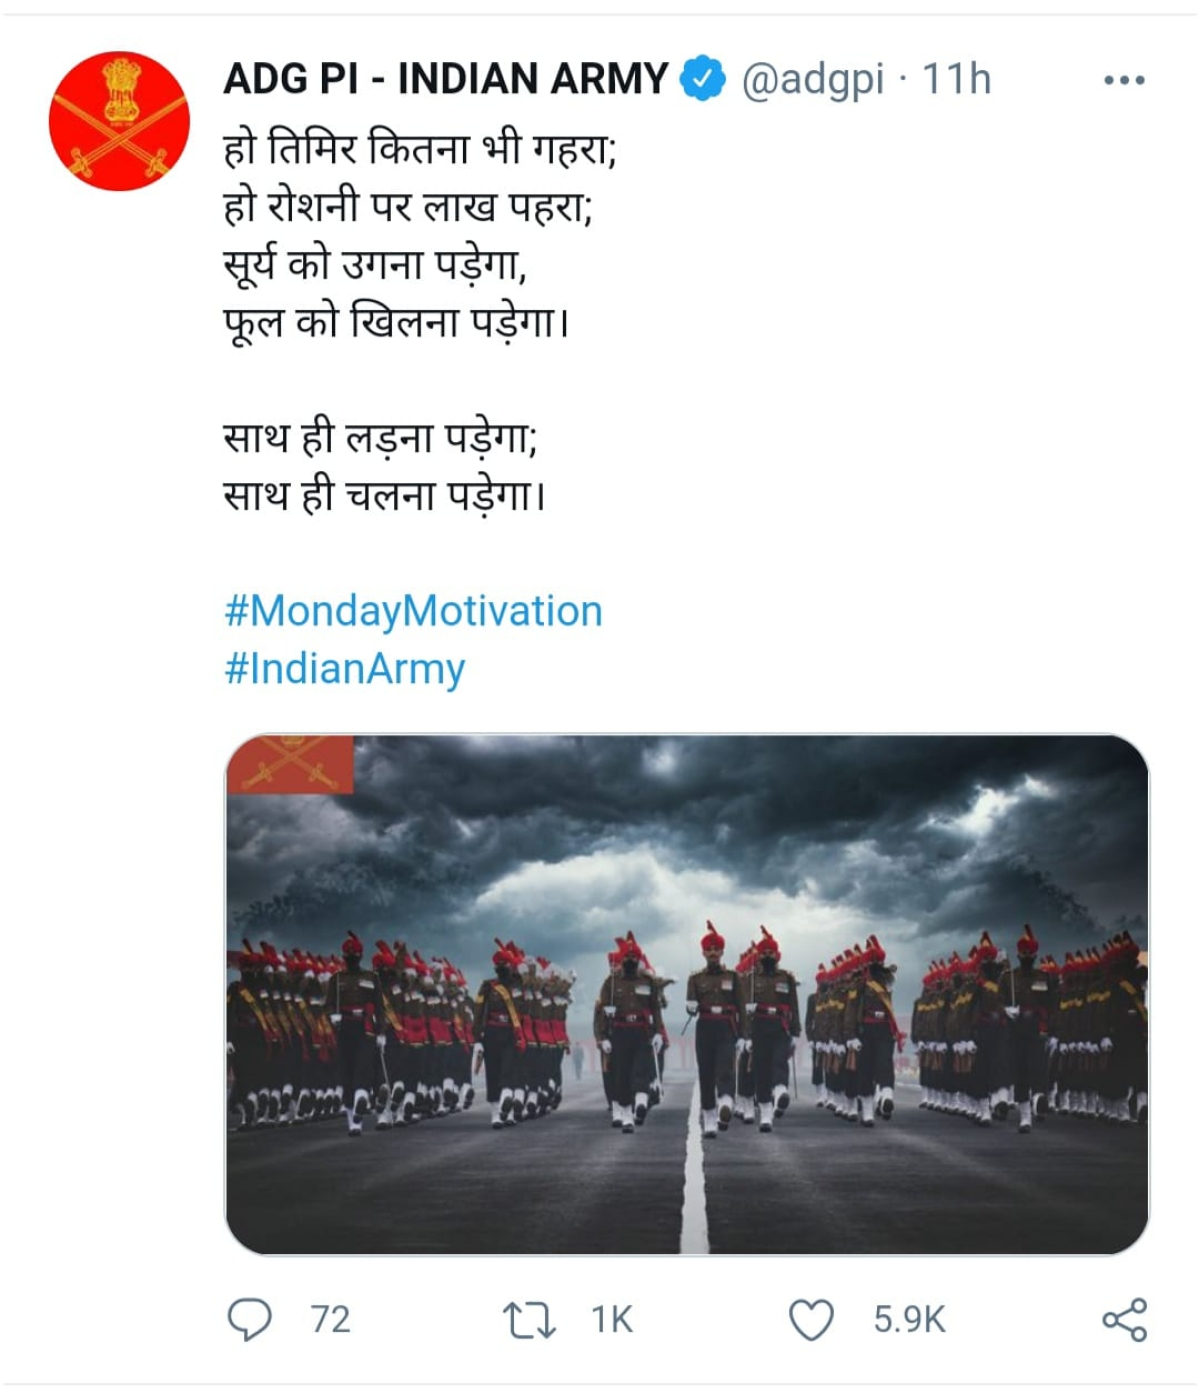 Screen shot of poetry shared by Indian army as Monday Motivation